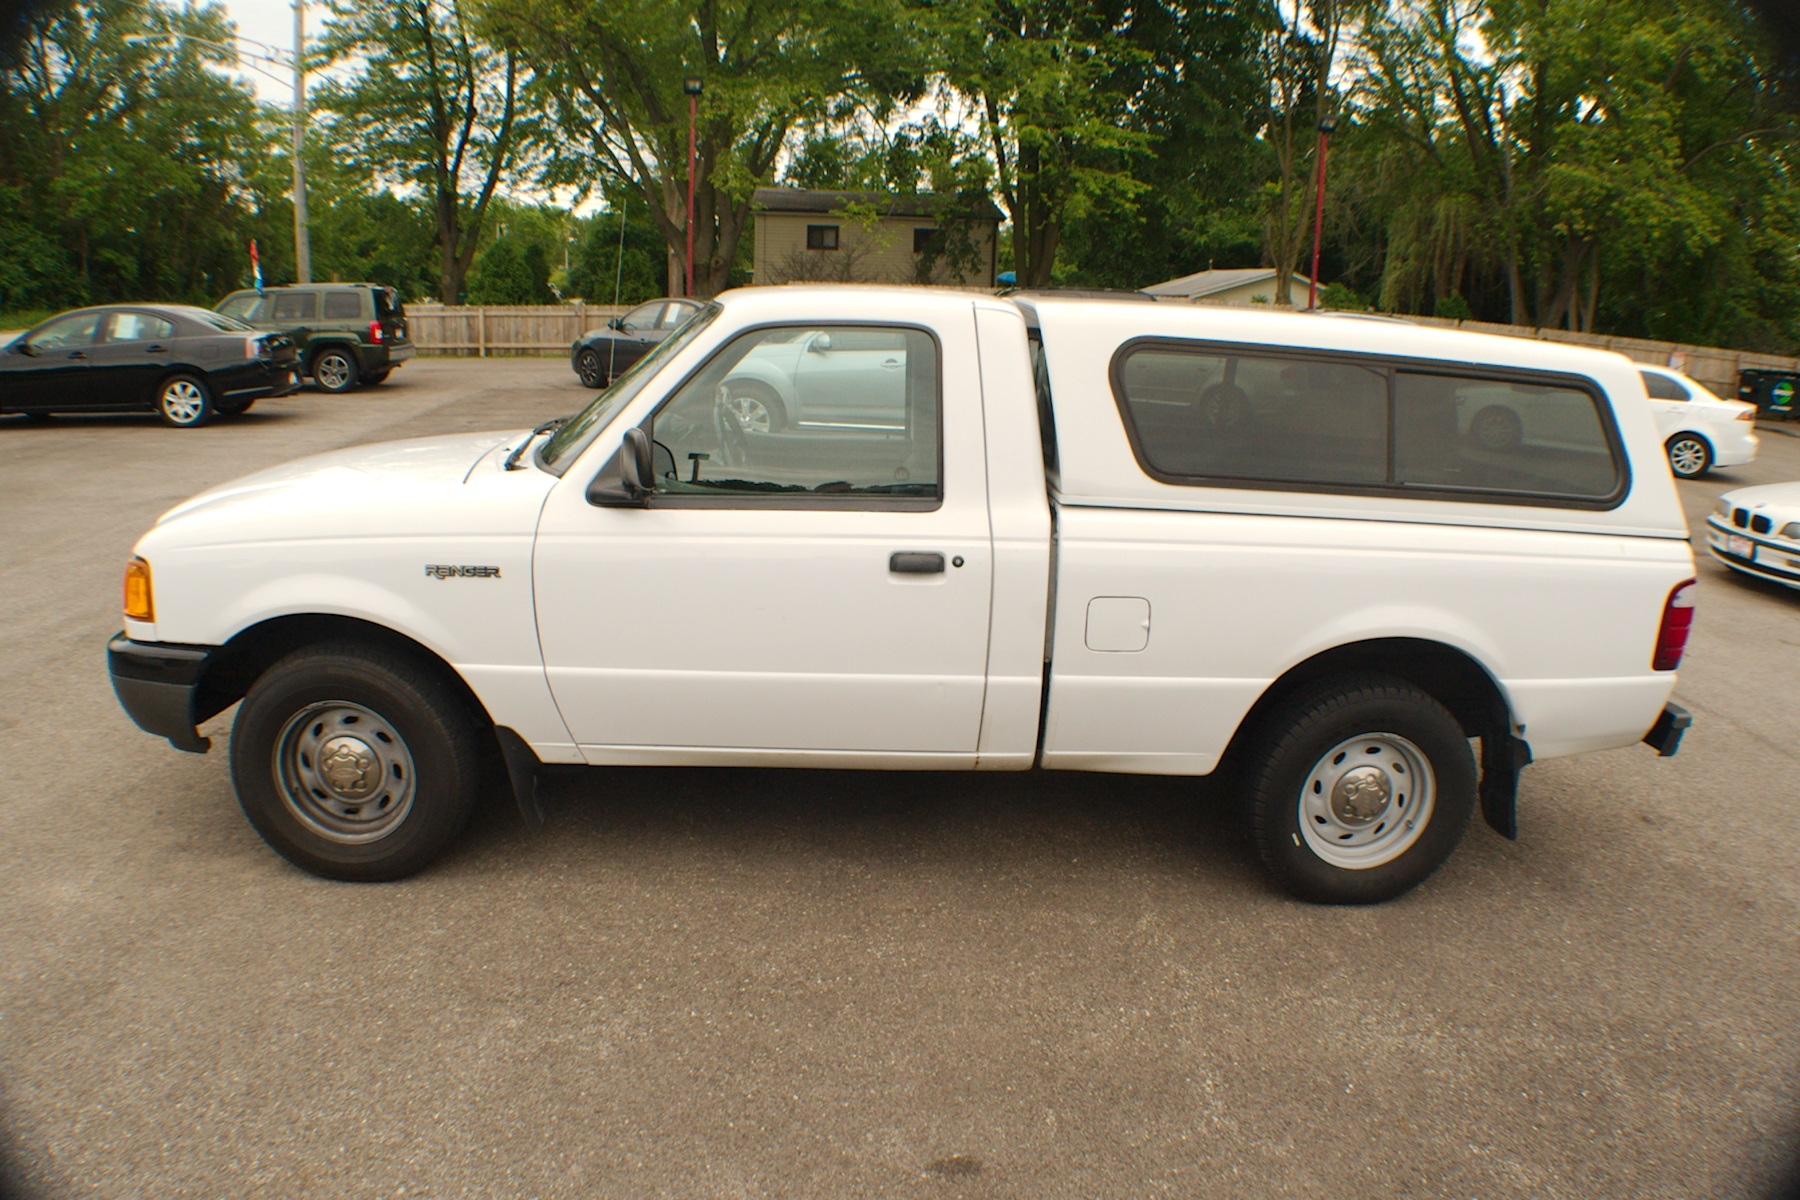 2001 Ford Ranger White Used 4x2 Reg Cab Used Truck Sale Antioch Zion Waukegan Lake County Illinois